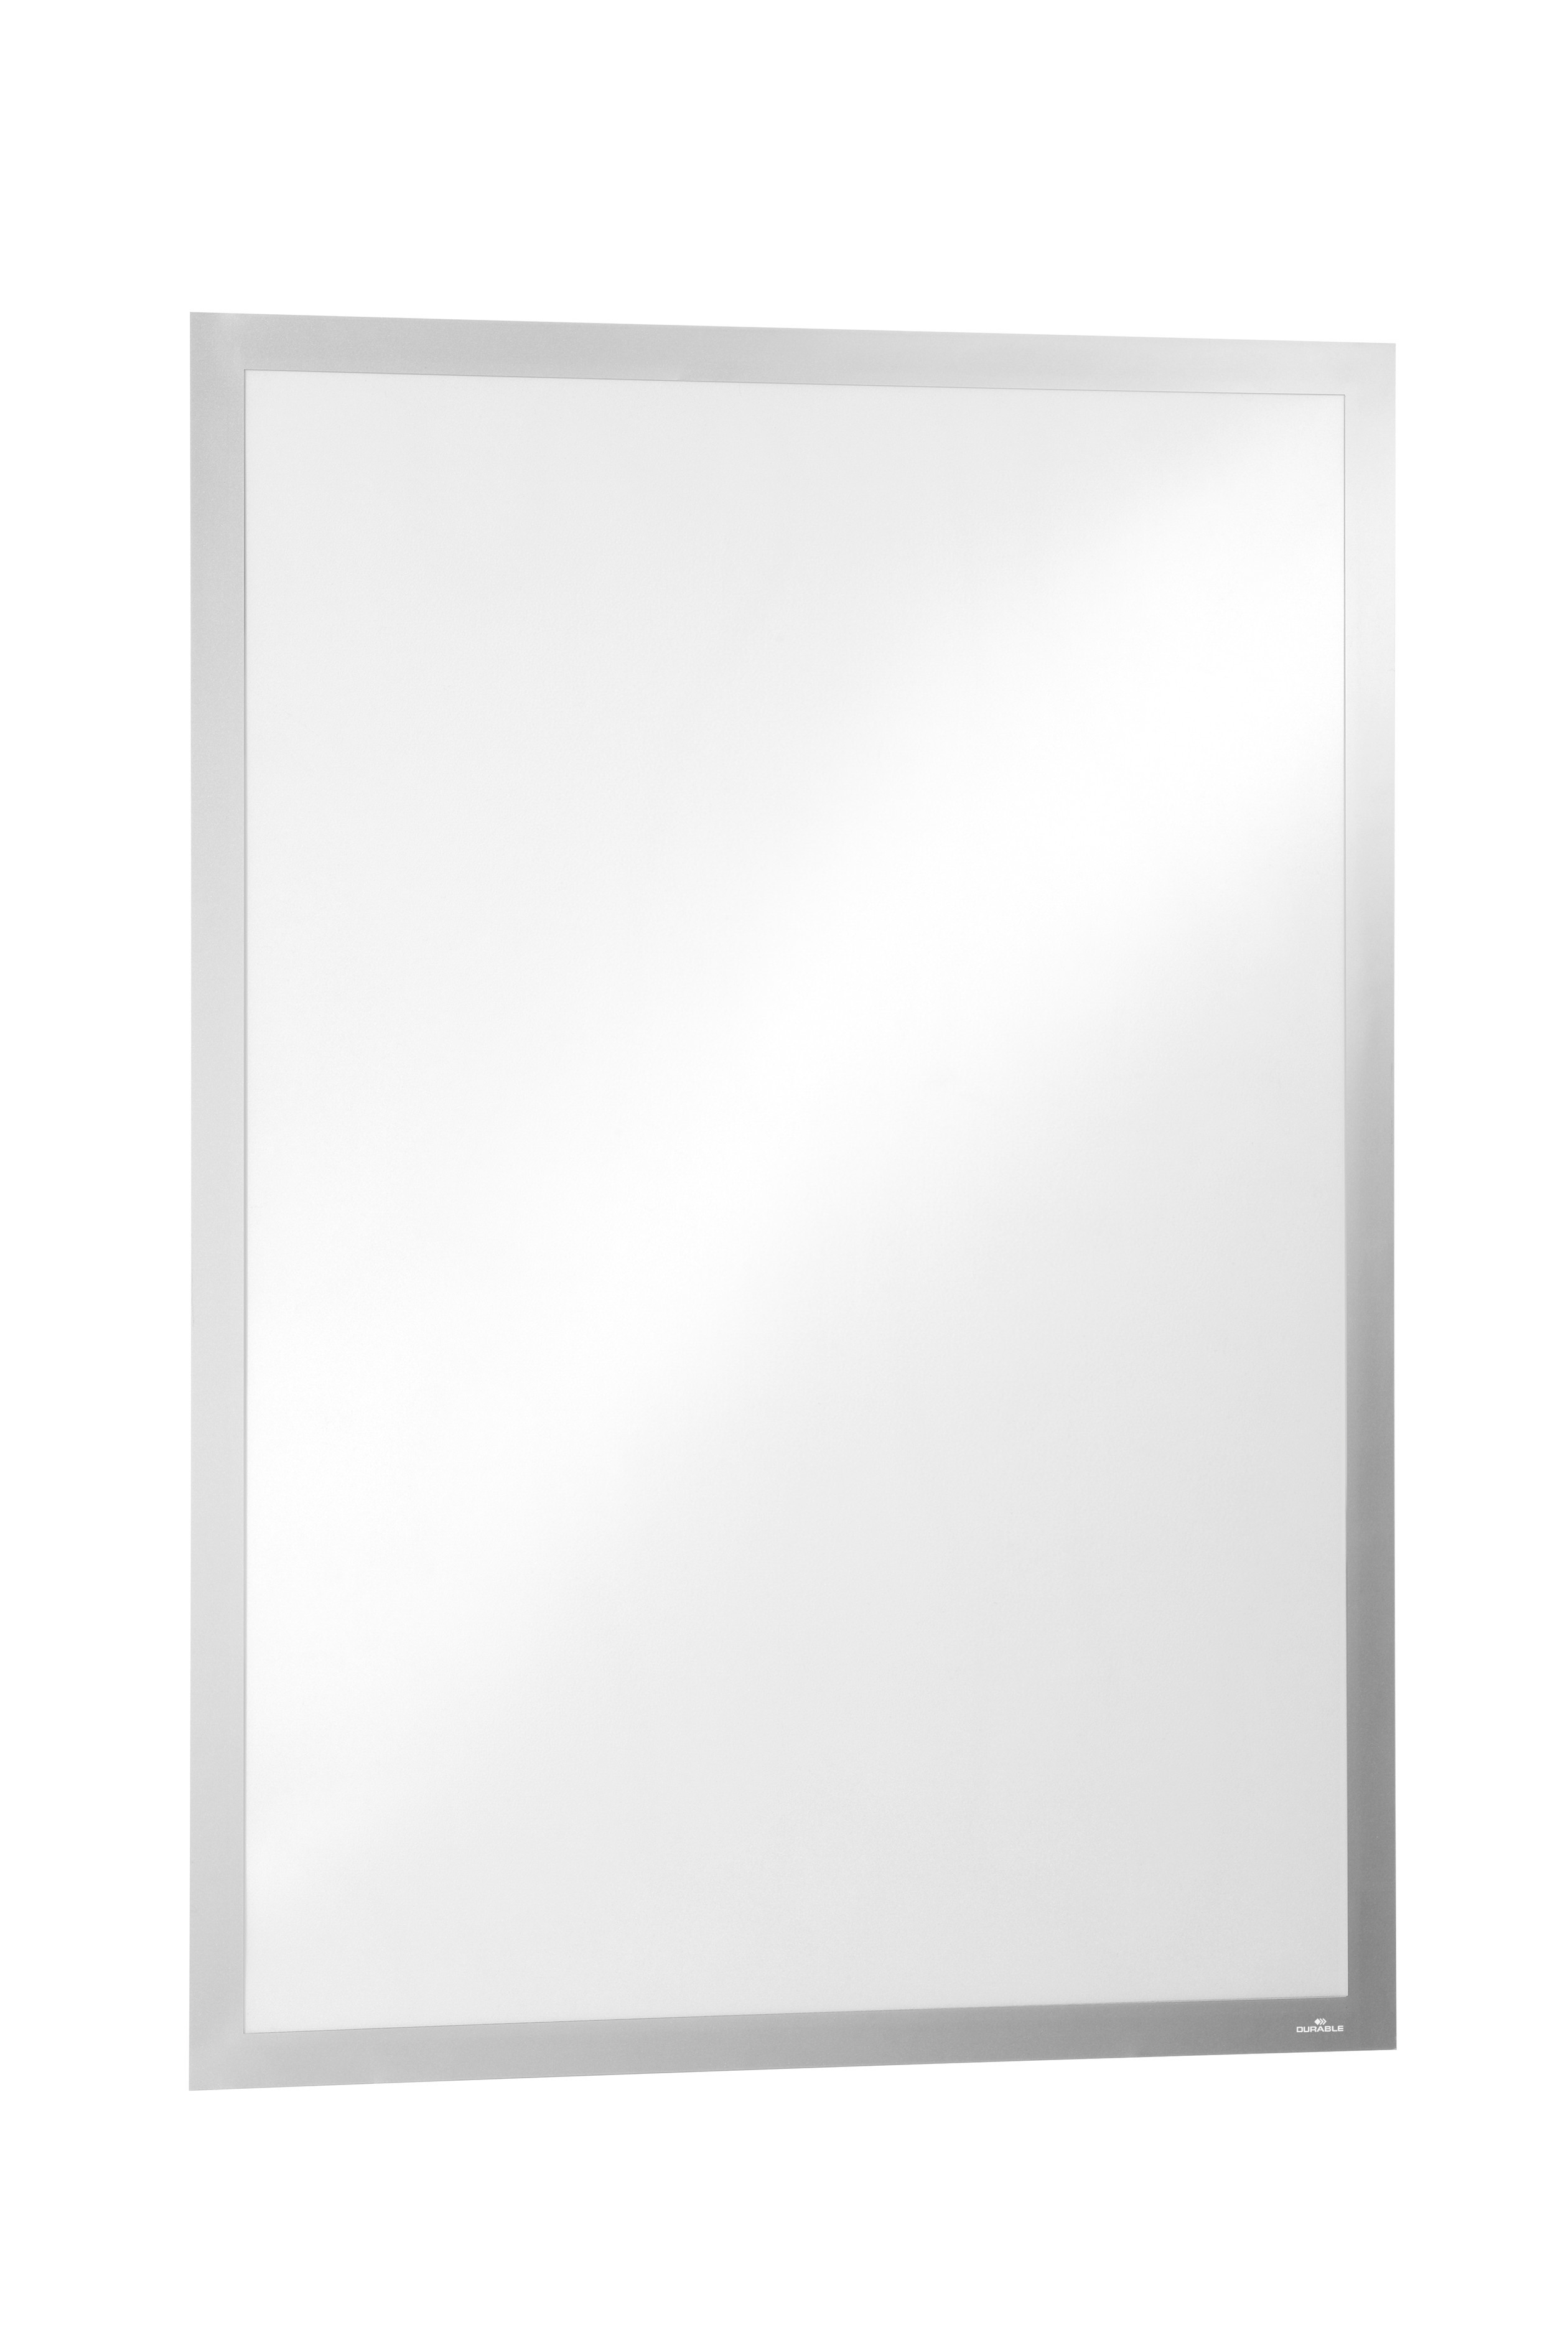 DURABLE DURAFRAME® POSTER A1 1 ST Z499799